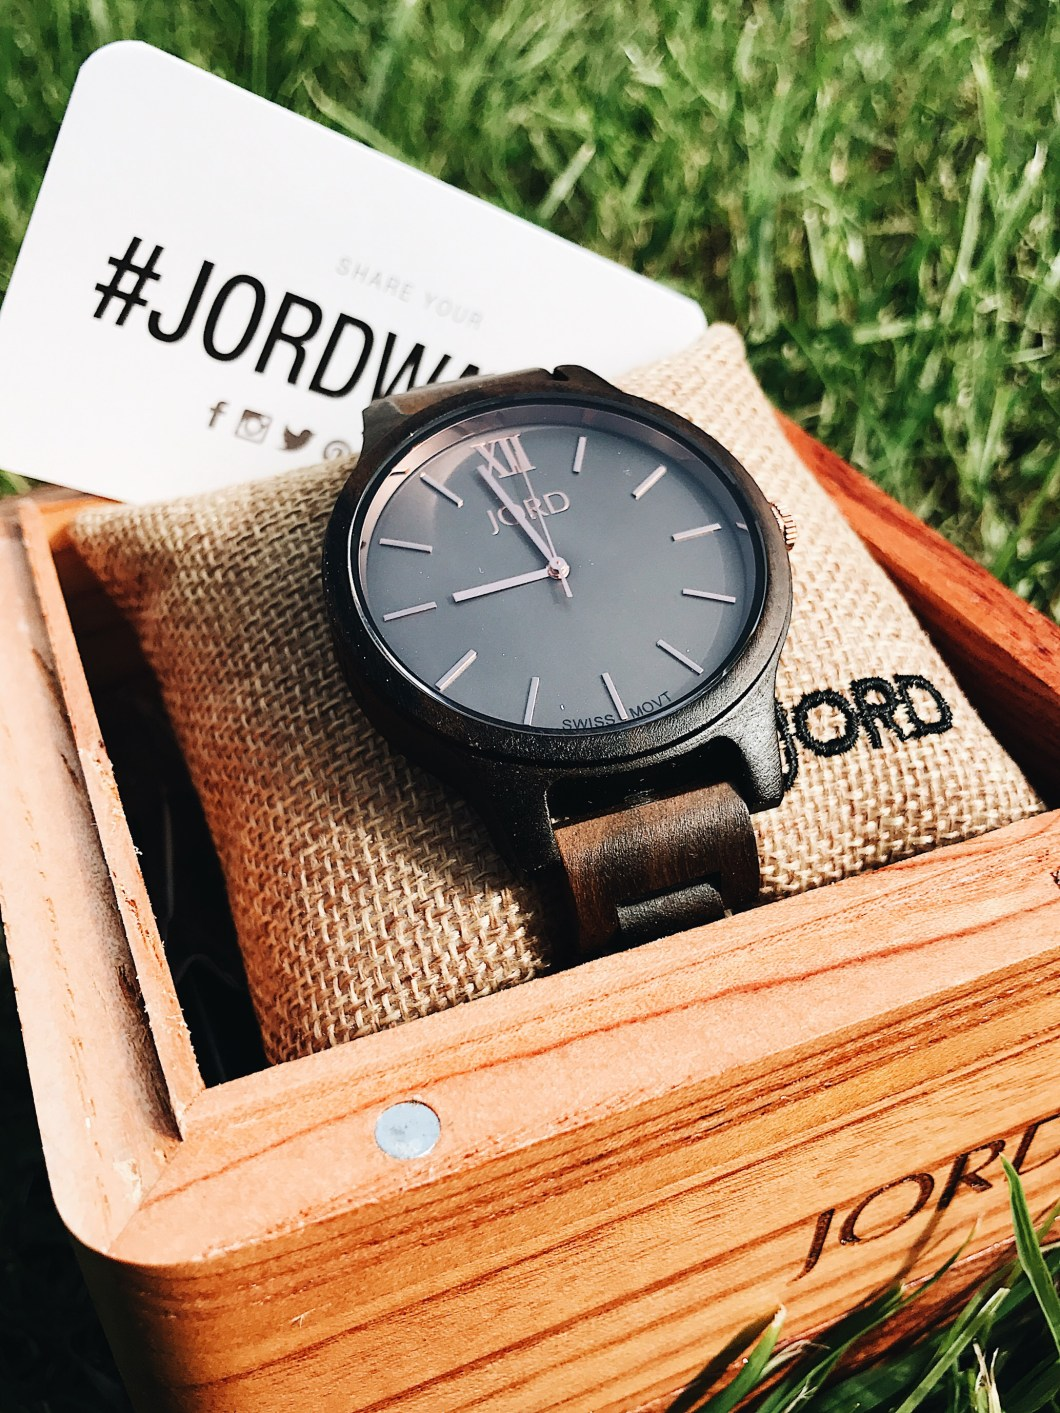 Wooden Watch, Jord wood watch, Jord Watches, men's watches, dad gifts, father's day gifts, cool men's watches